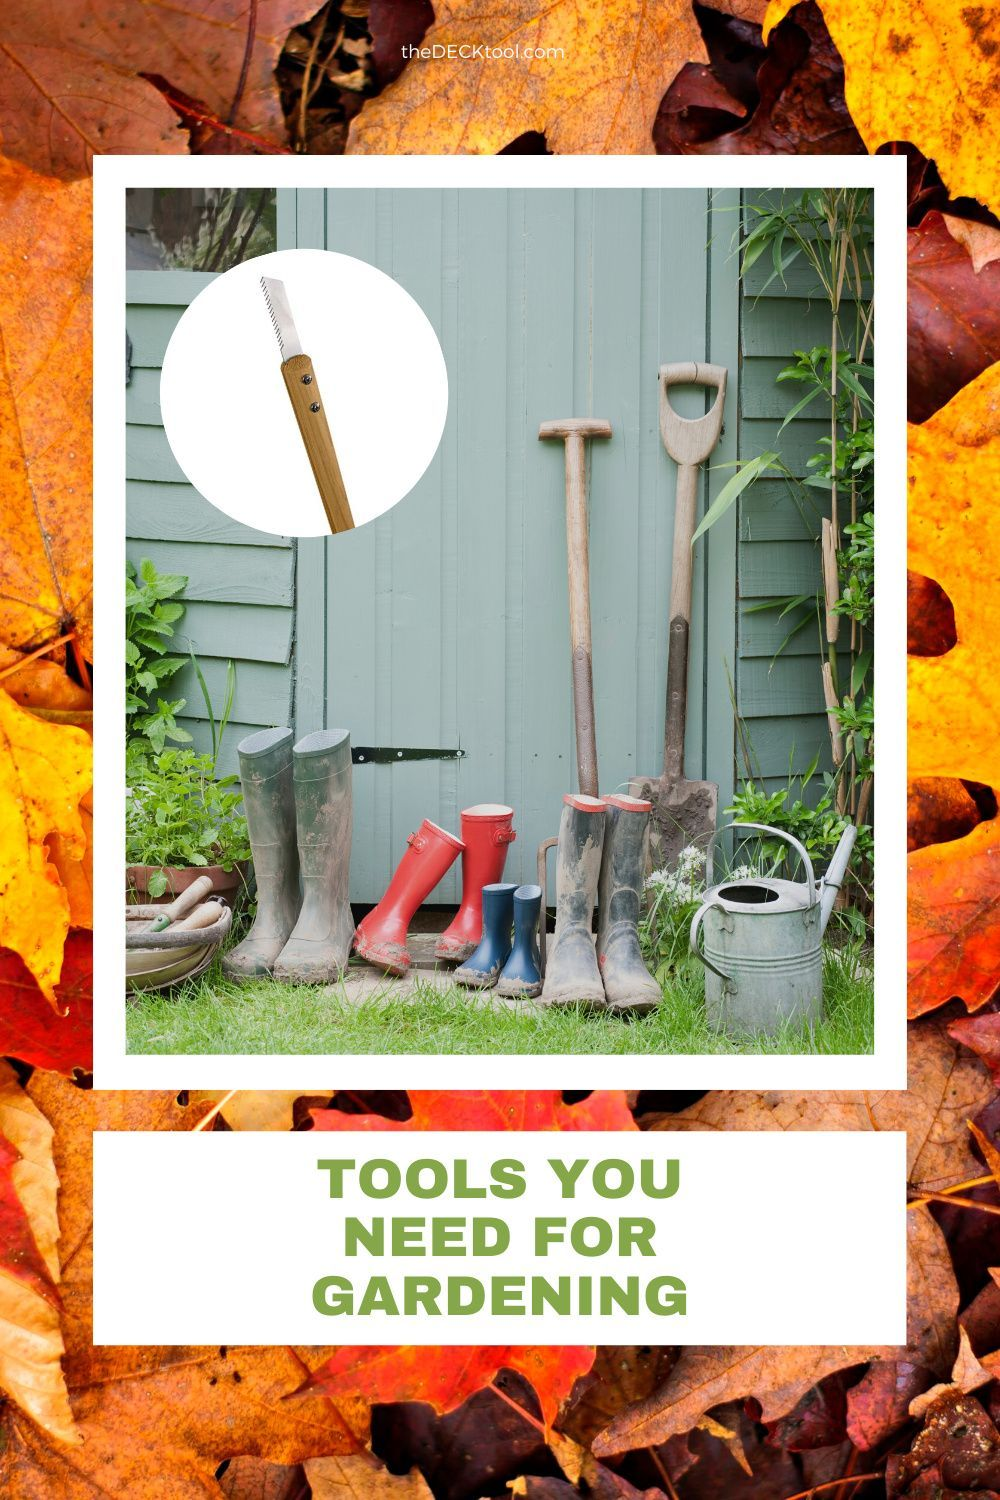 Best Yardwork Christmas Gift For Dad 2020 The Best Gardening And Outdoor Yard Work Tool in 2020 | Cool